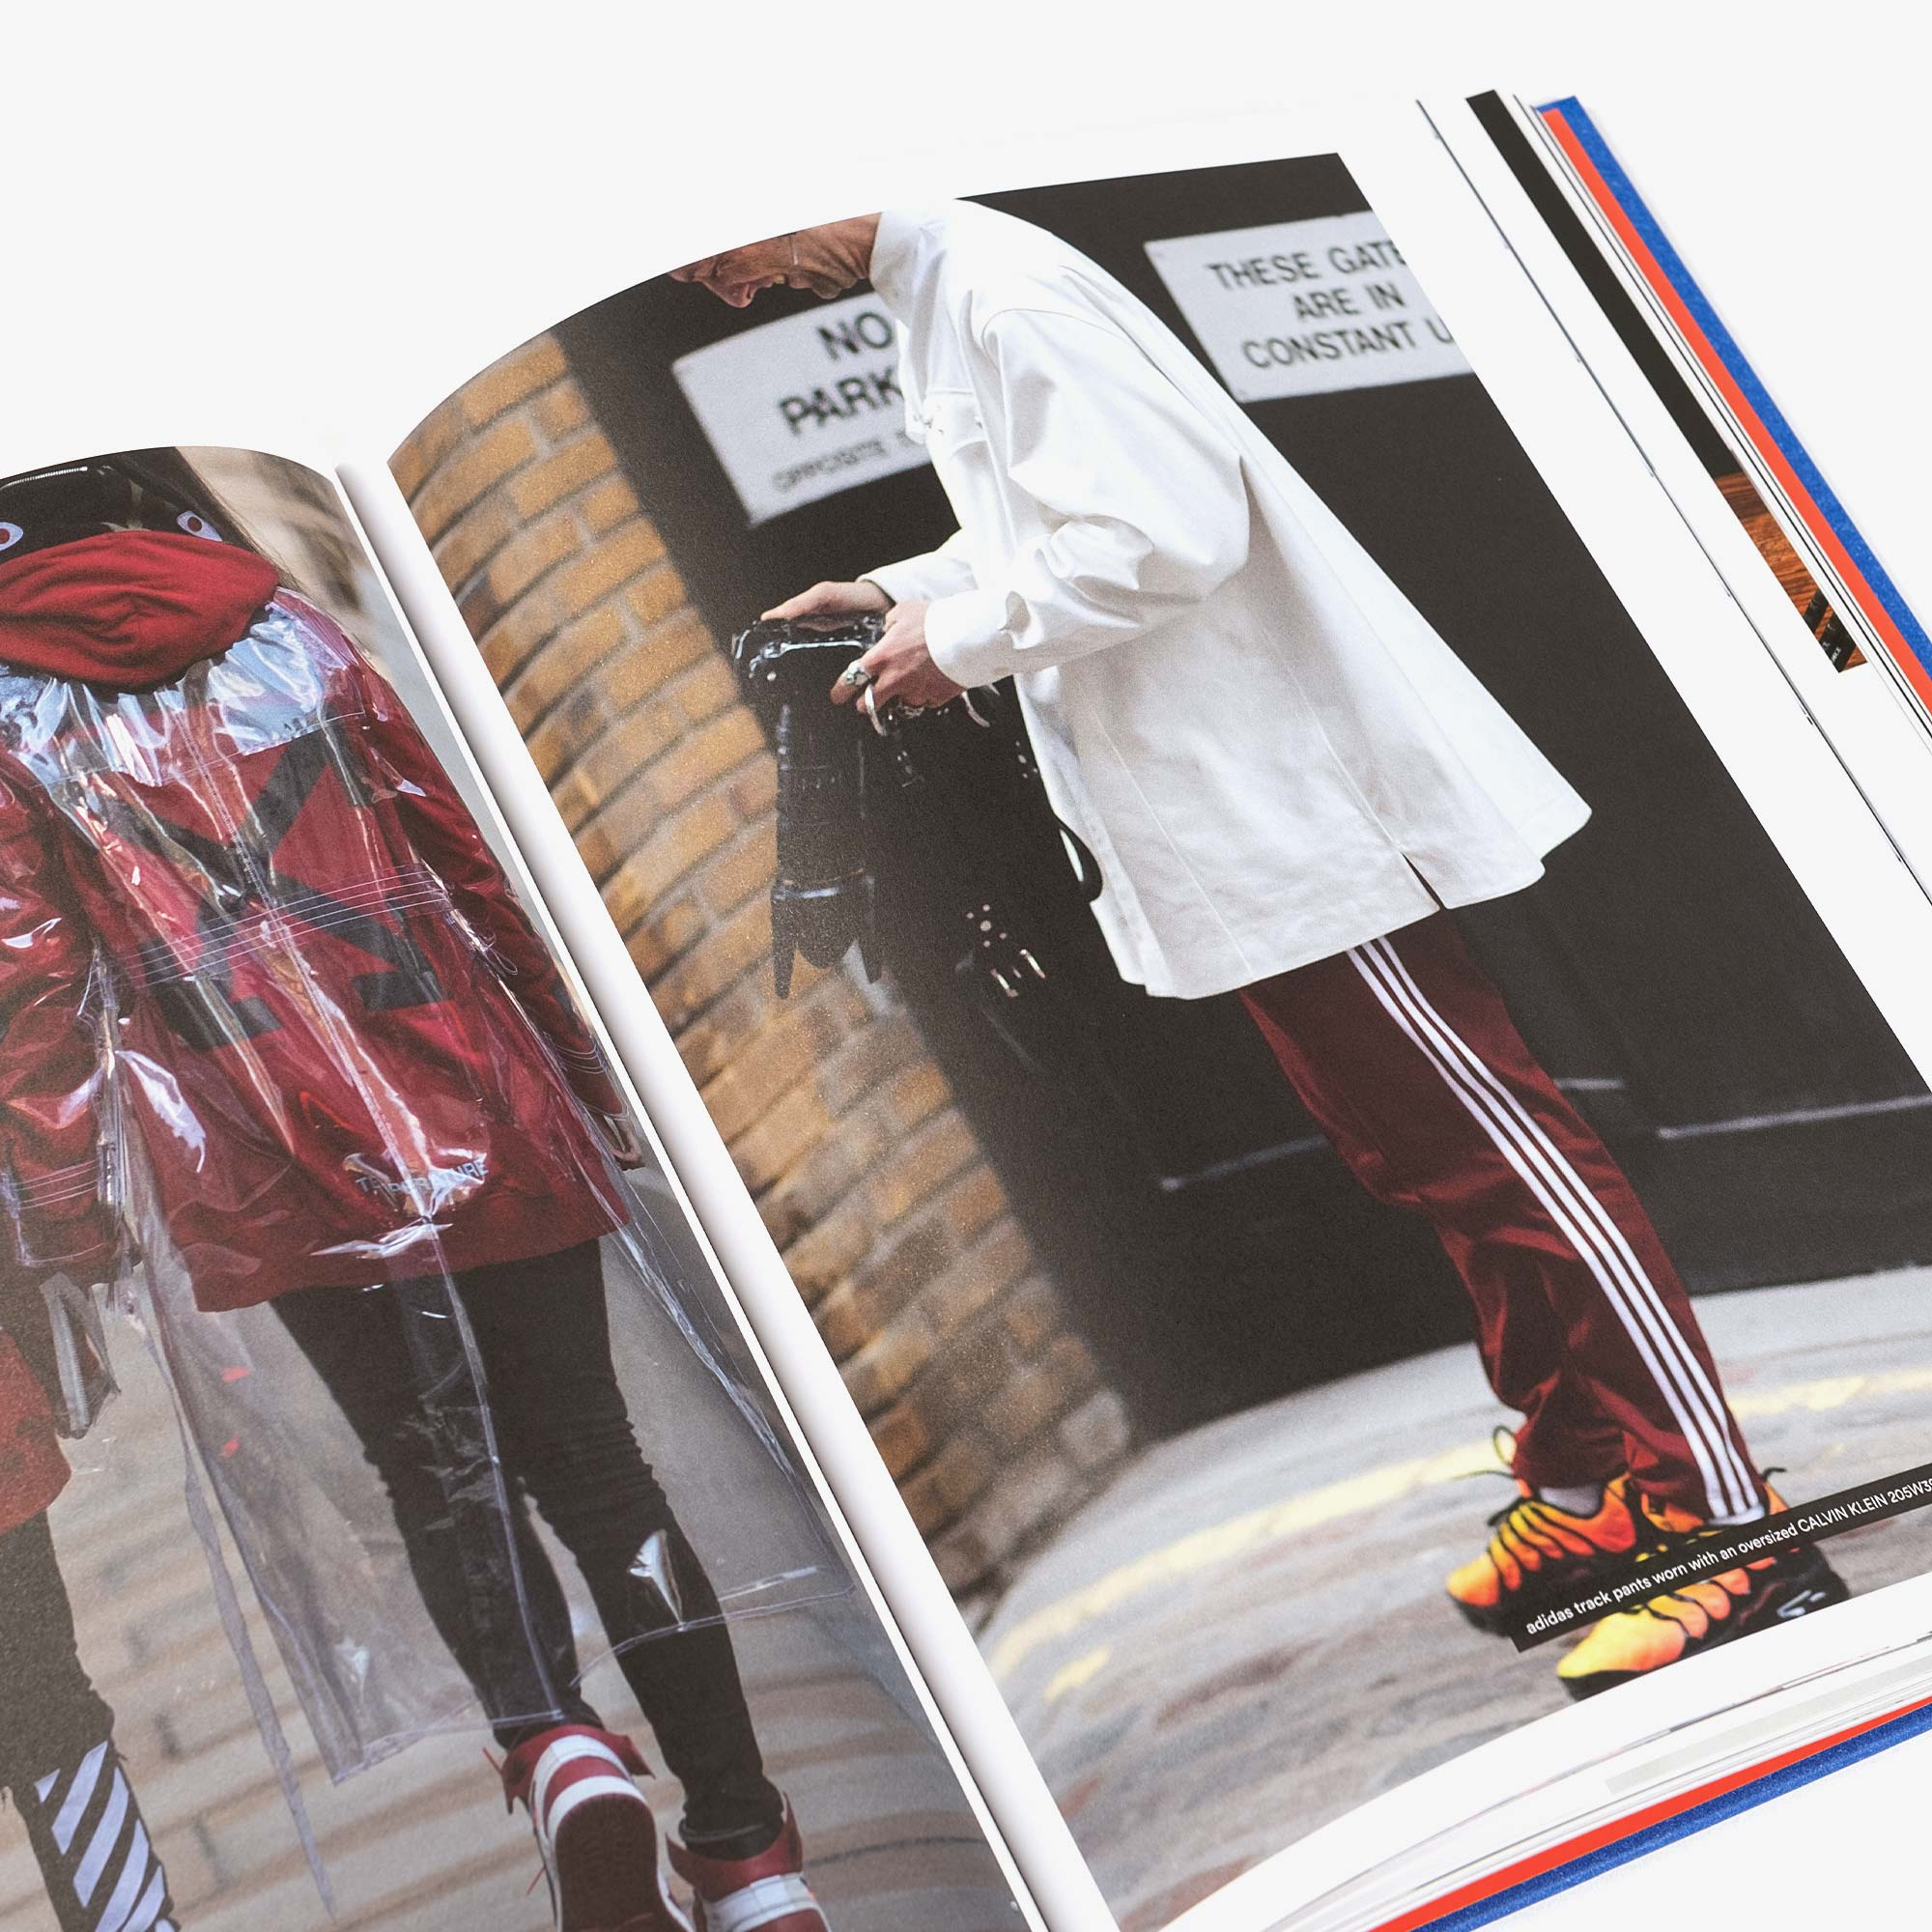 Gestalten The Complete Highsnobiety Guide To Street Fashion And Culture - High Snobiety 2